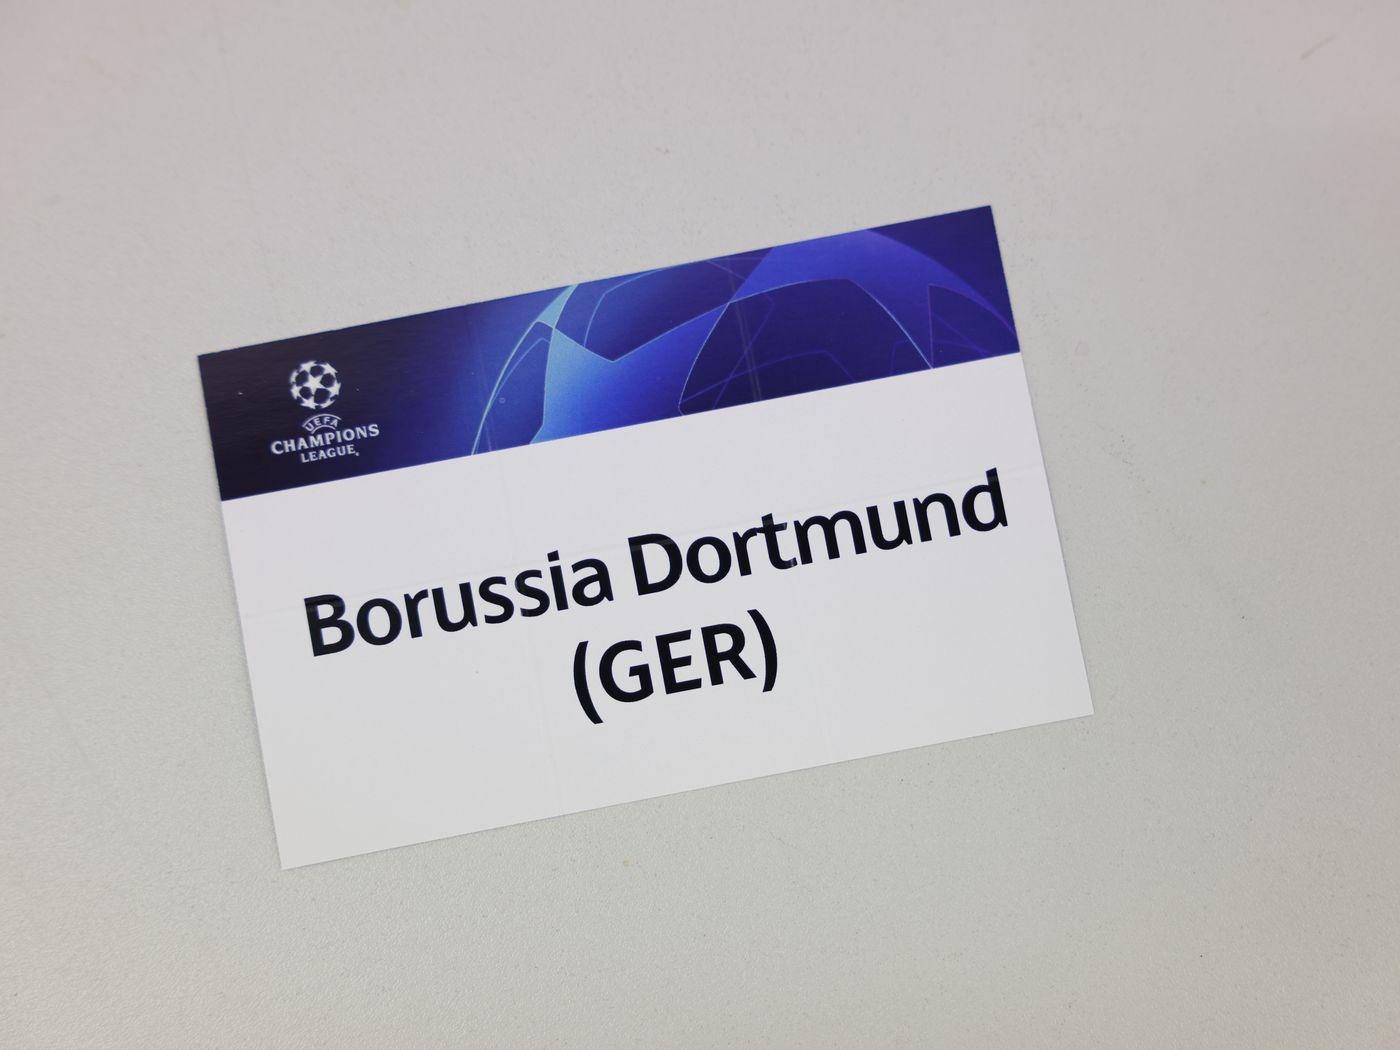 Borussia Dortmund Draw Manchester City in the Champions League  Quarterfinals (Update) - Fear The Wall